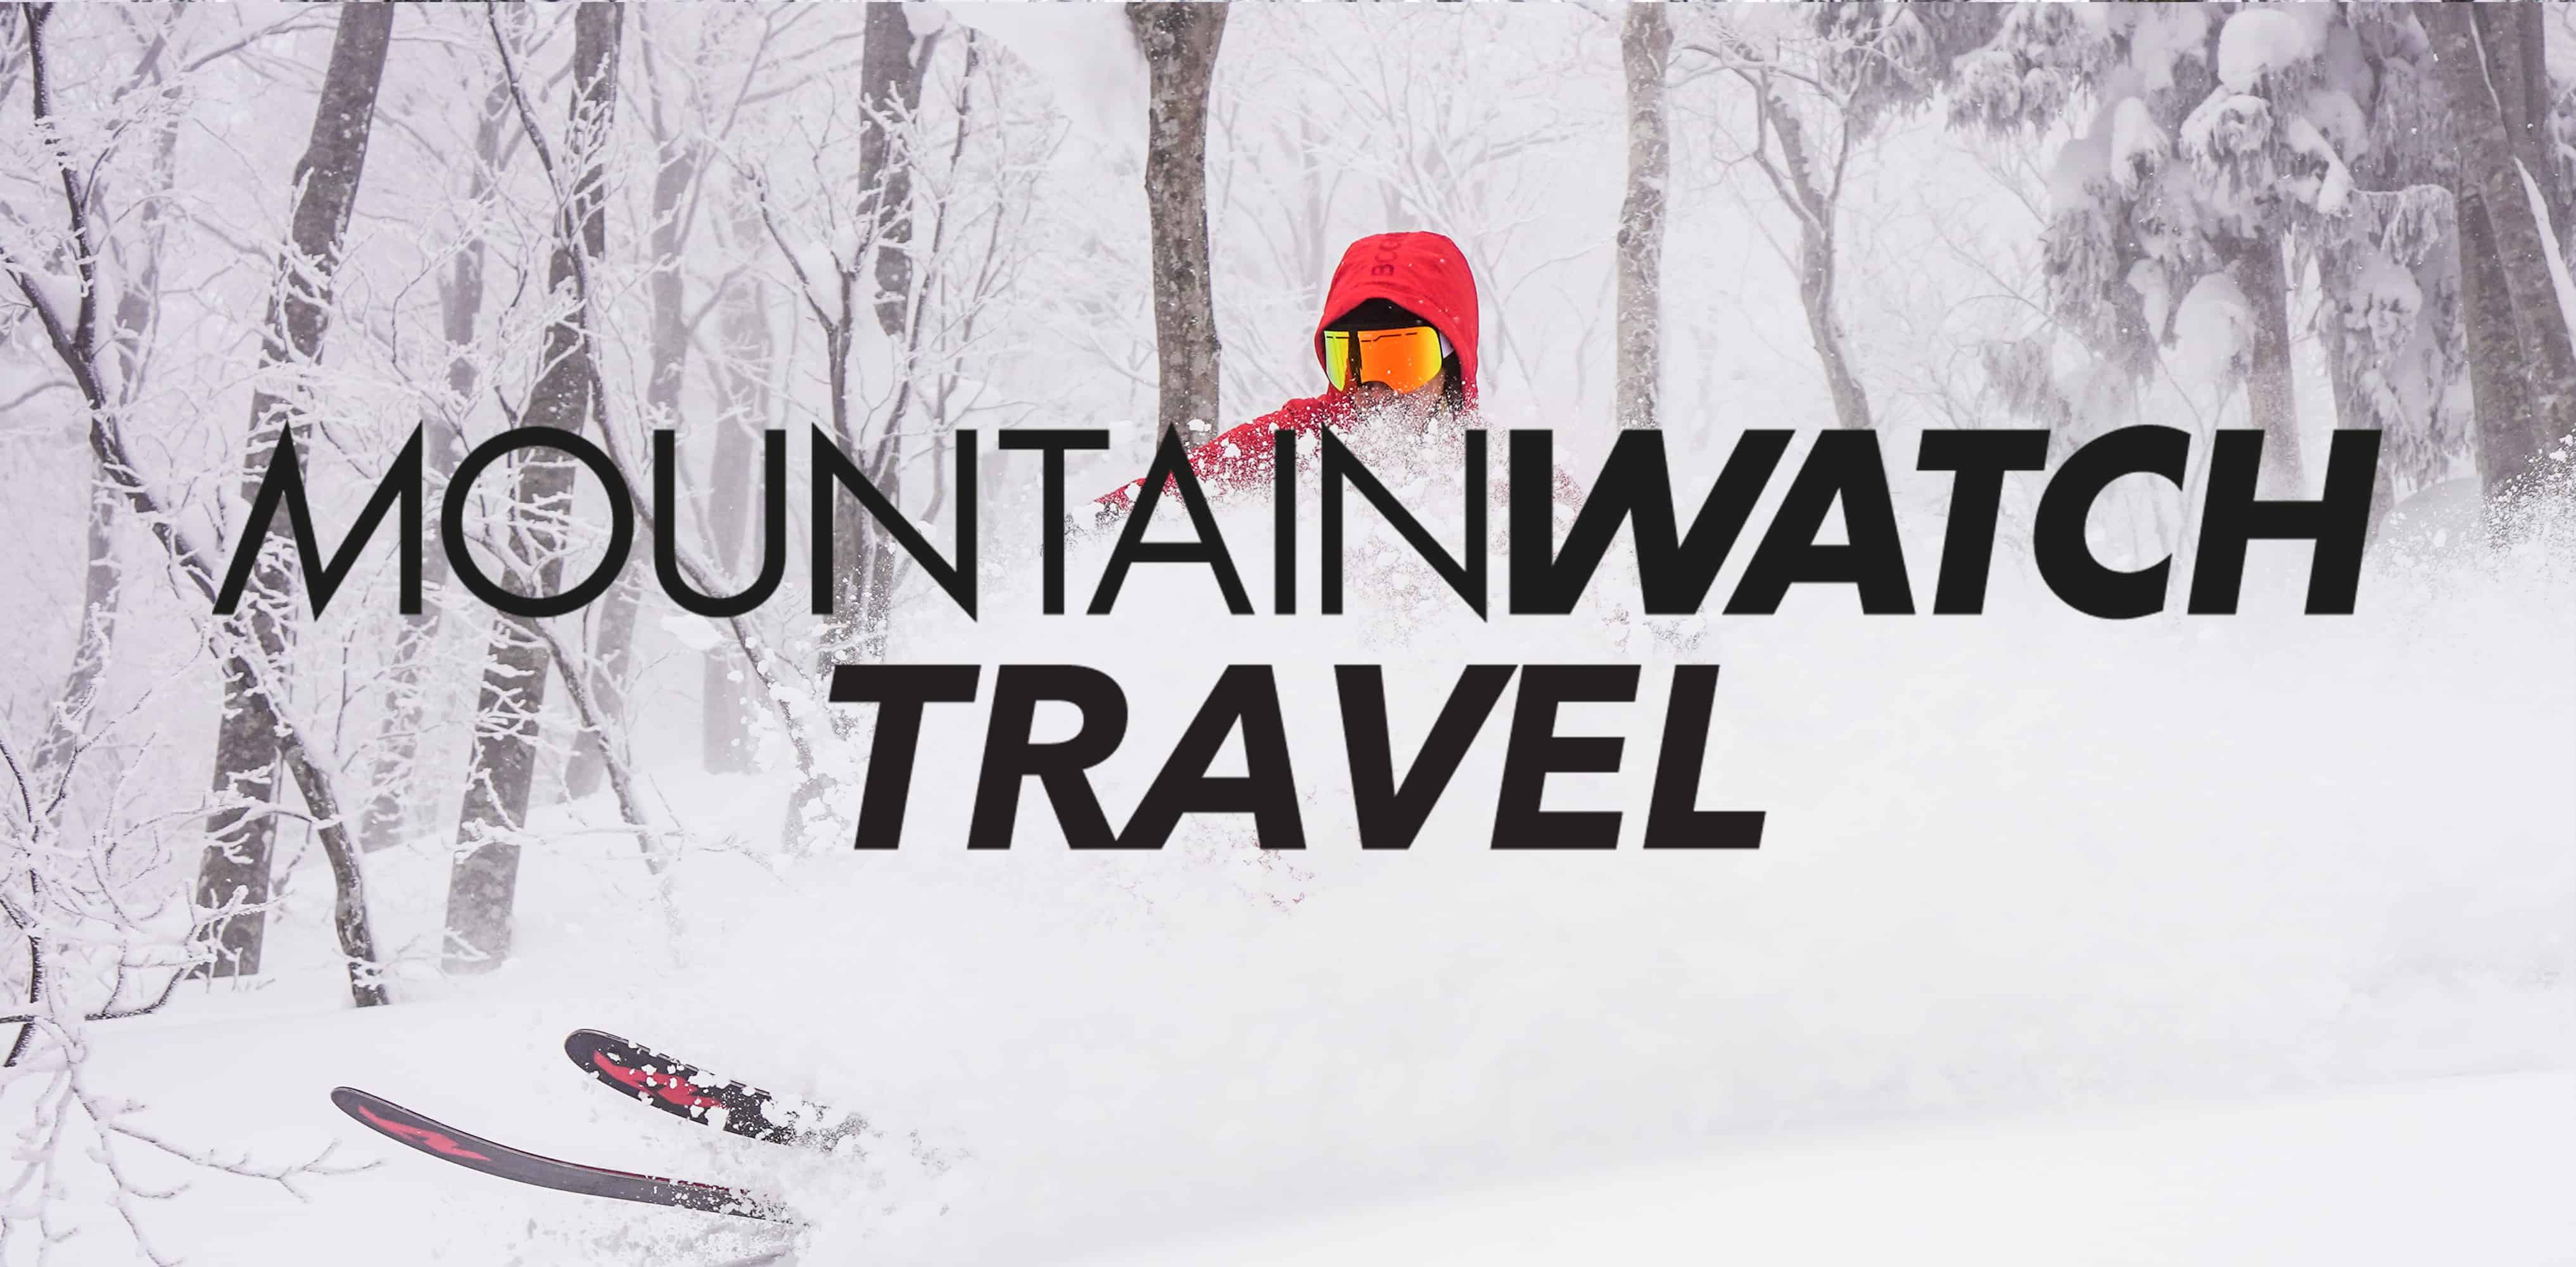 Mountainwatch Travel Is Here - Earlybird Ski Packages For the 2019 - 2020 season.